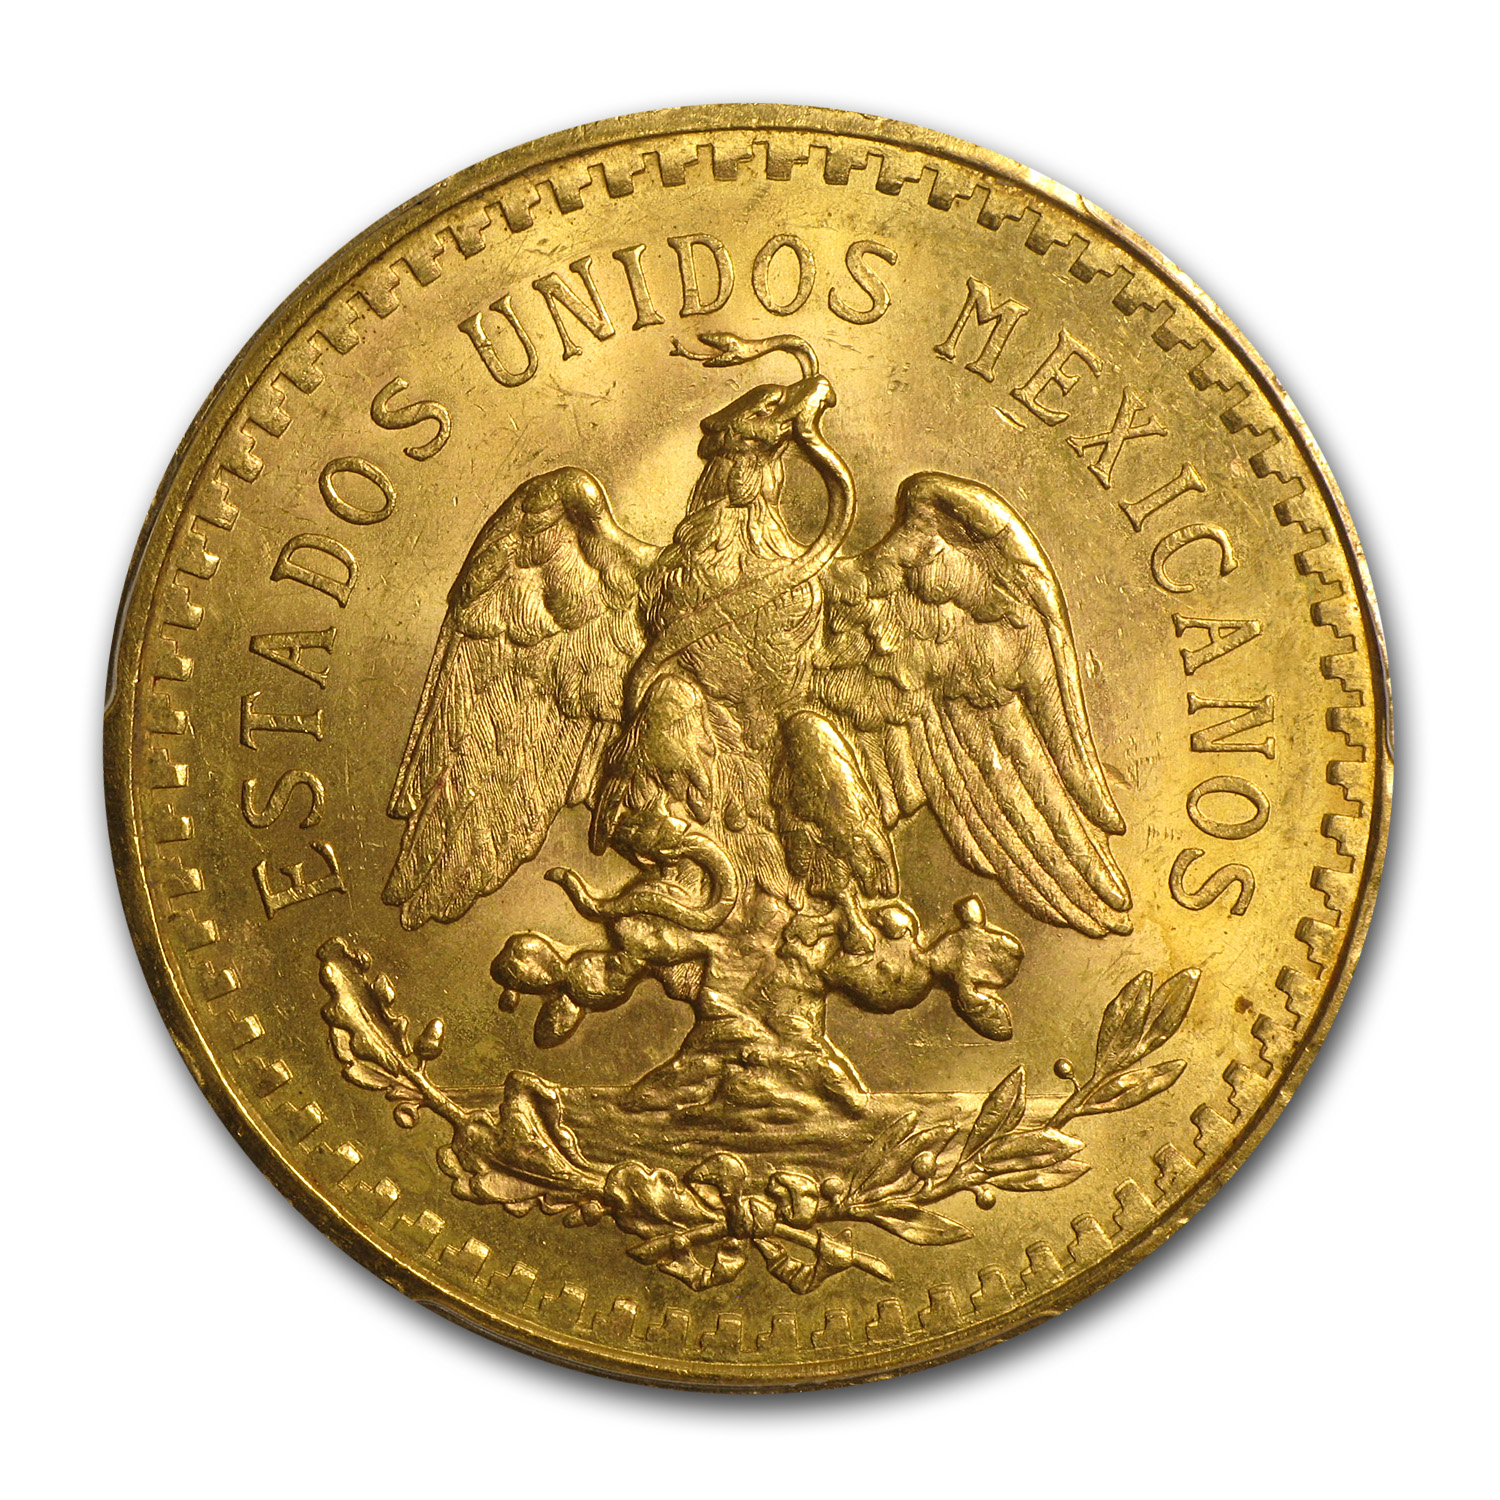 Mexico 1928 50 Pesos Gold Coin - MS-64+ PCGS (Secure Plus!)